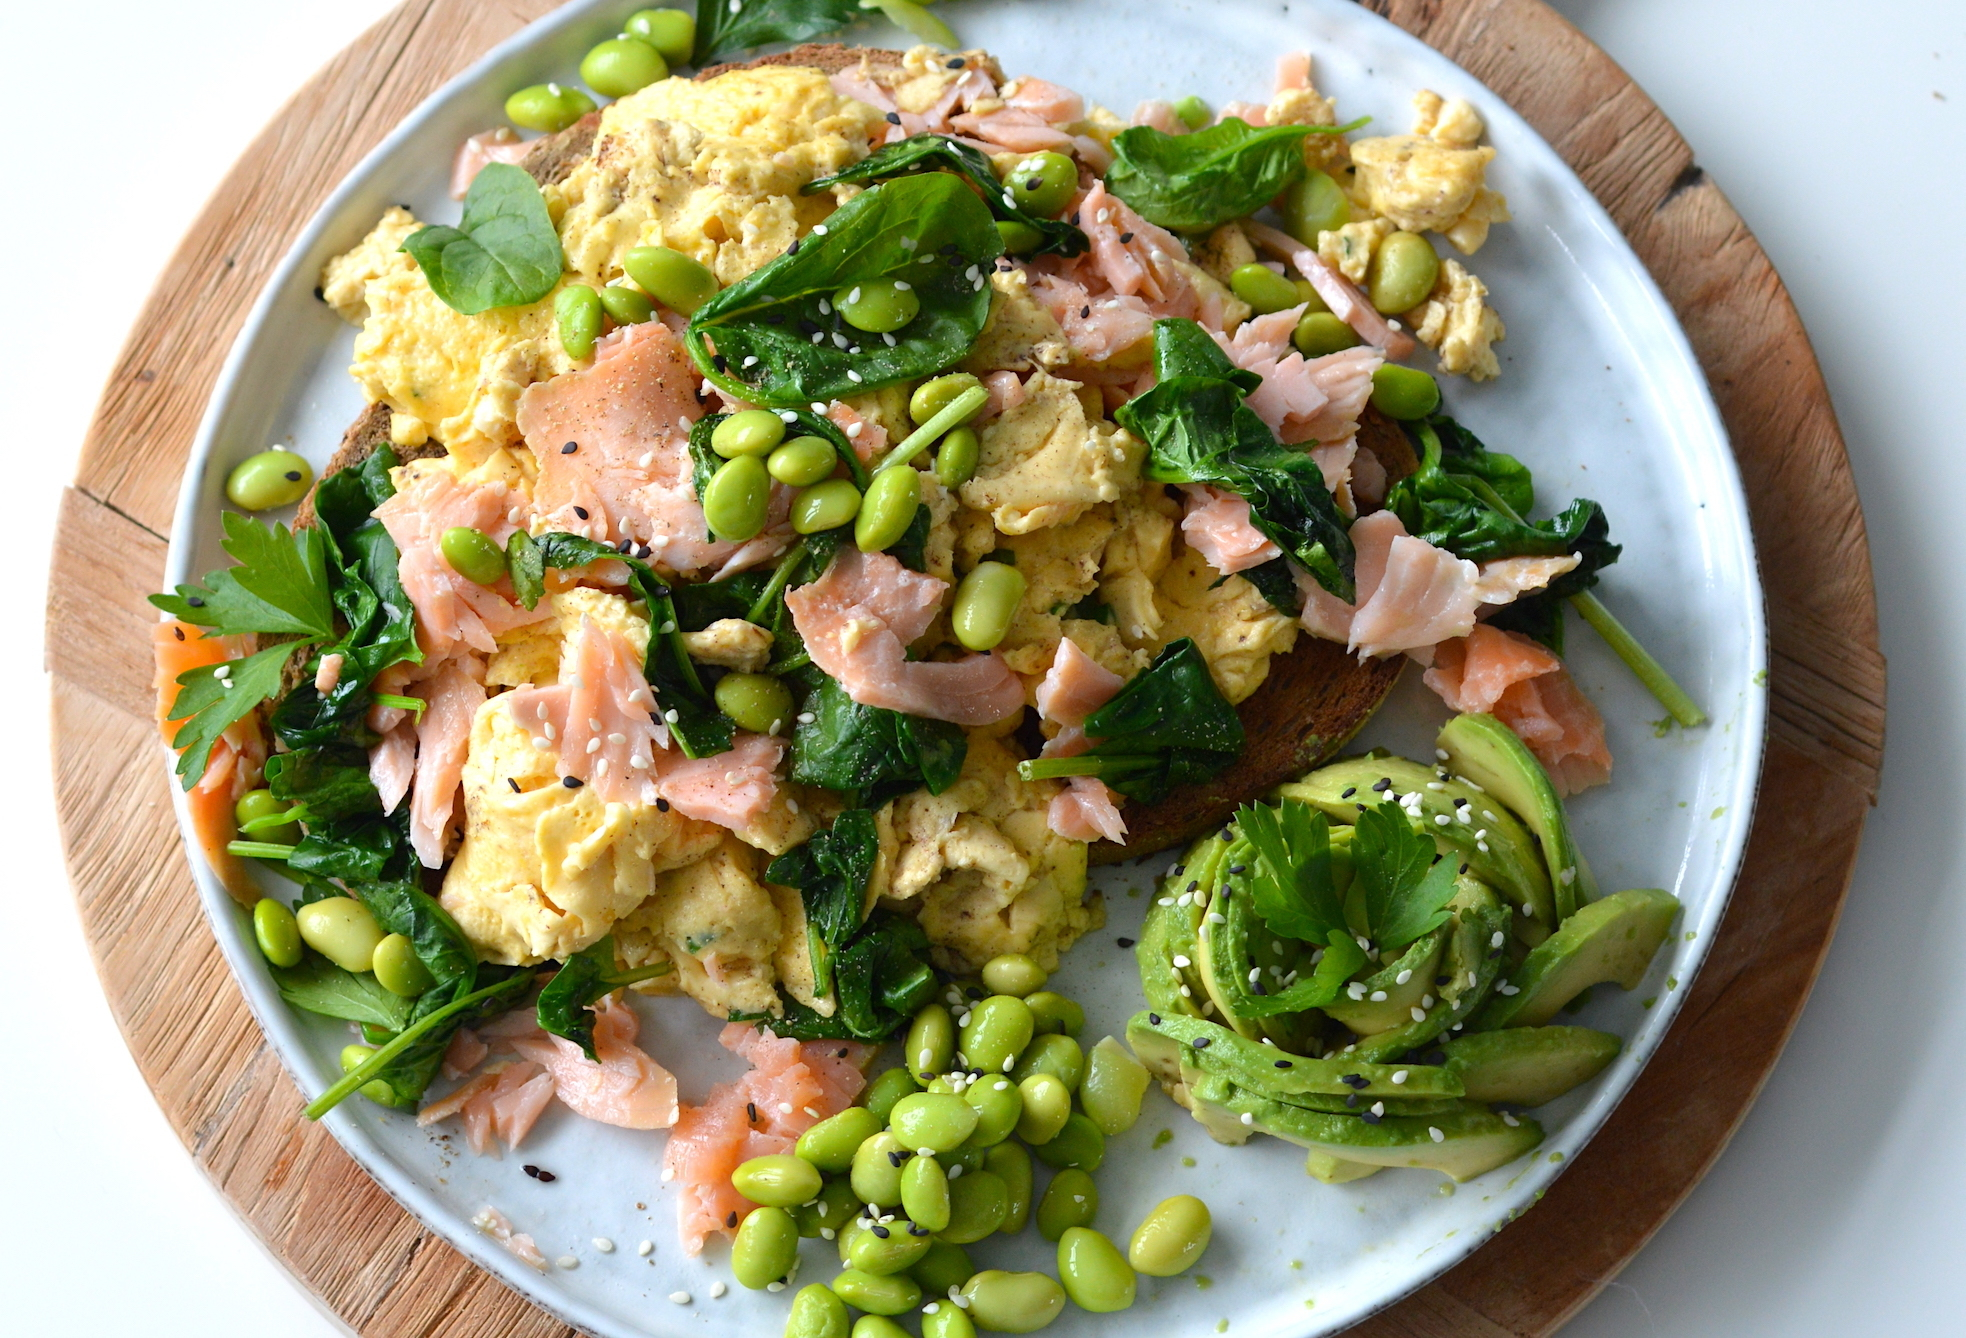 Scrambled eggs met gerookte zalm (video)